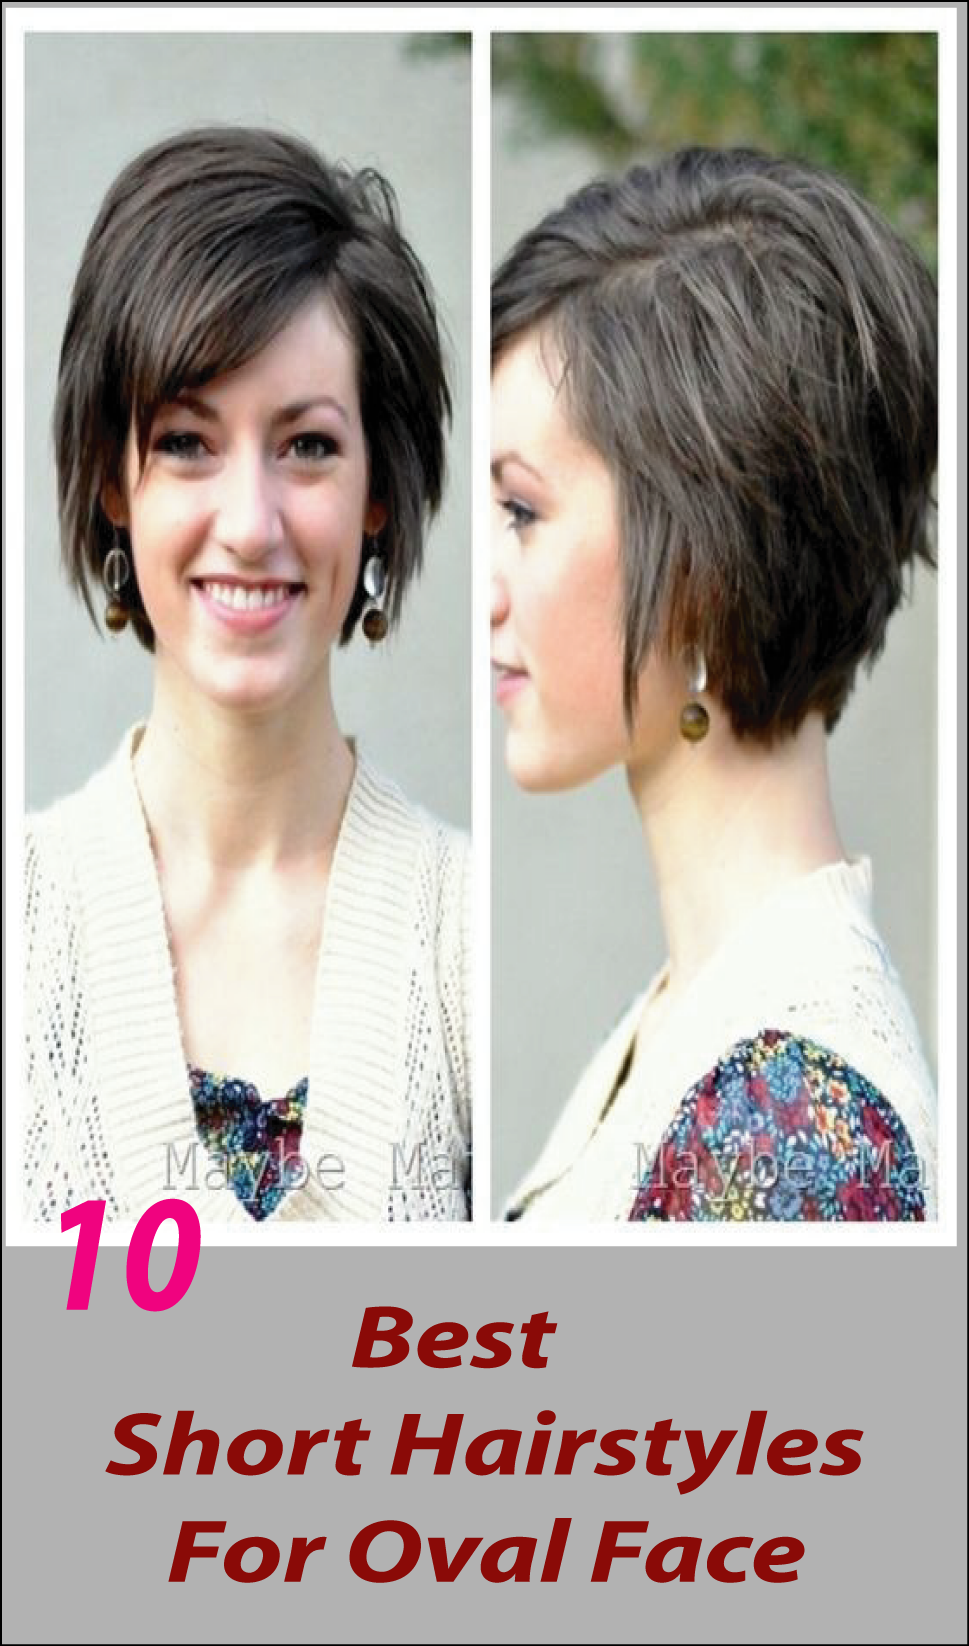 Looking for short hairstyles for oval face? Wondering how to find